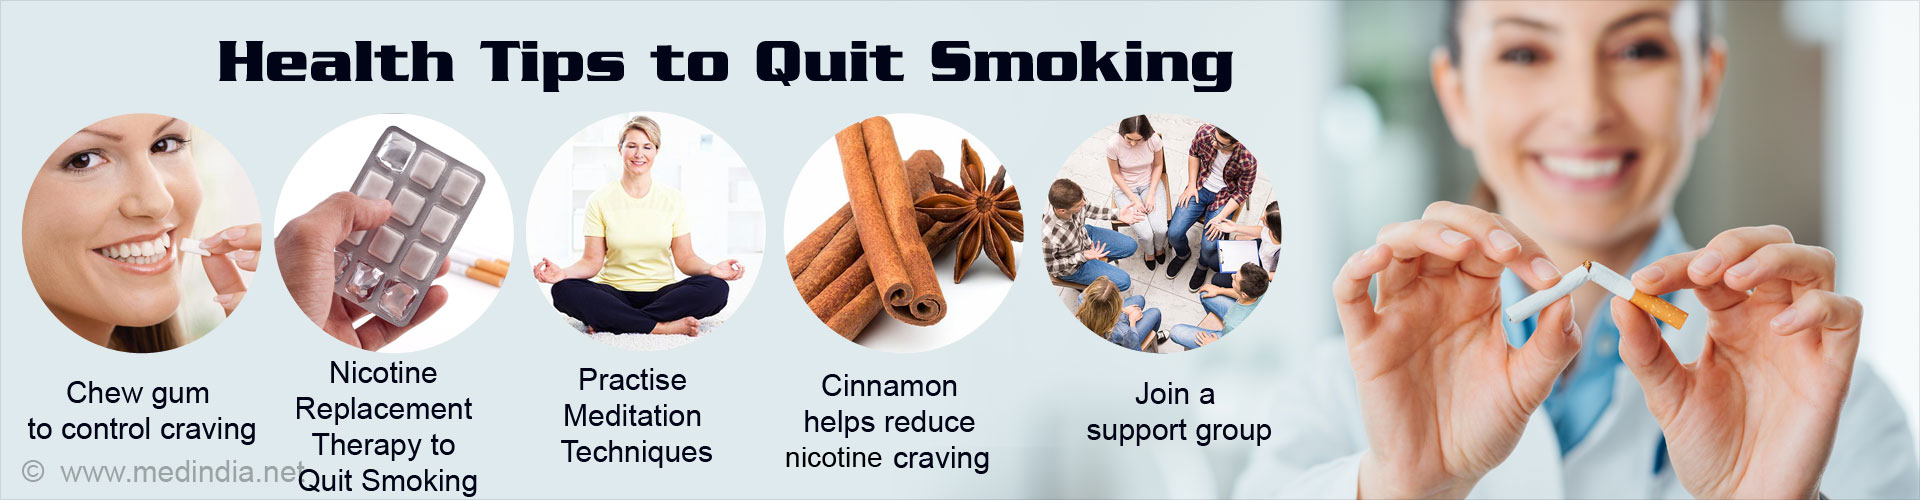 Health Tips to Quit Smoking - Chew gum to control craving - Nicotine replacement therapy to quit smoking - Practise meditation - Cinnamon helps reduce nicotine craving - Join a support group